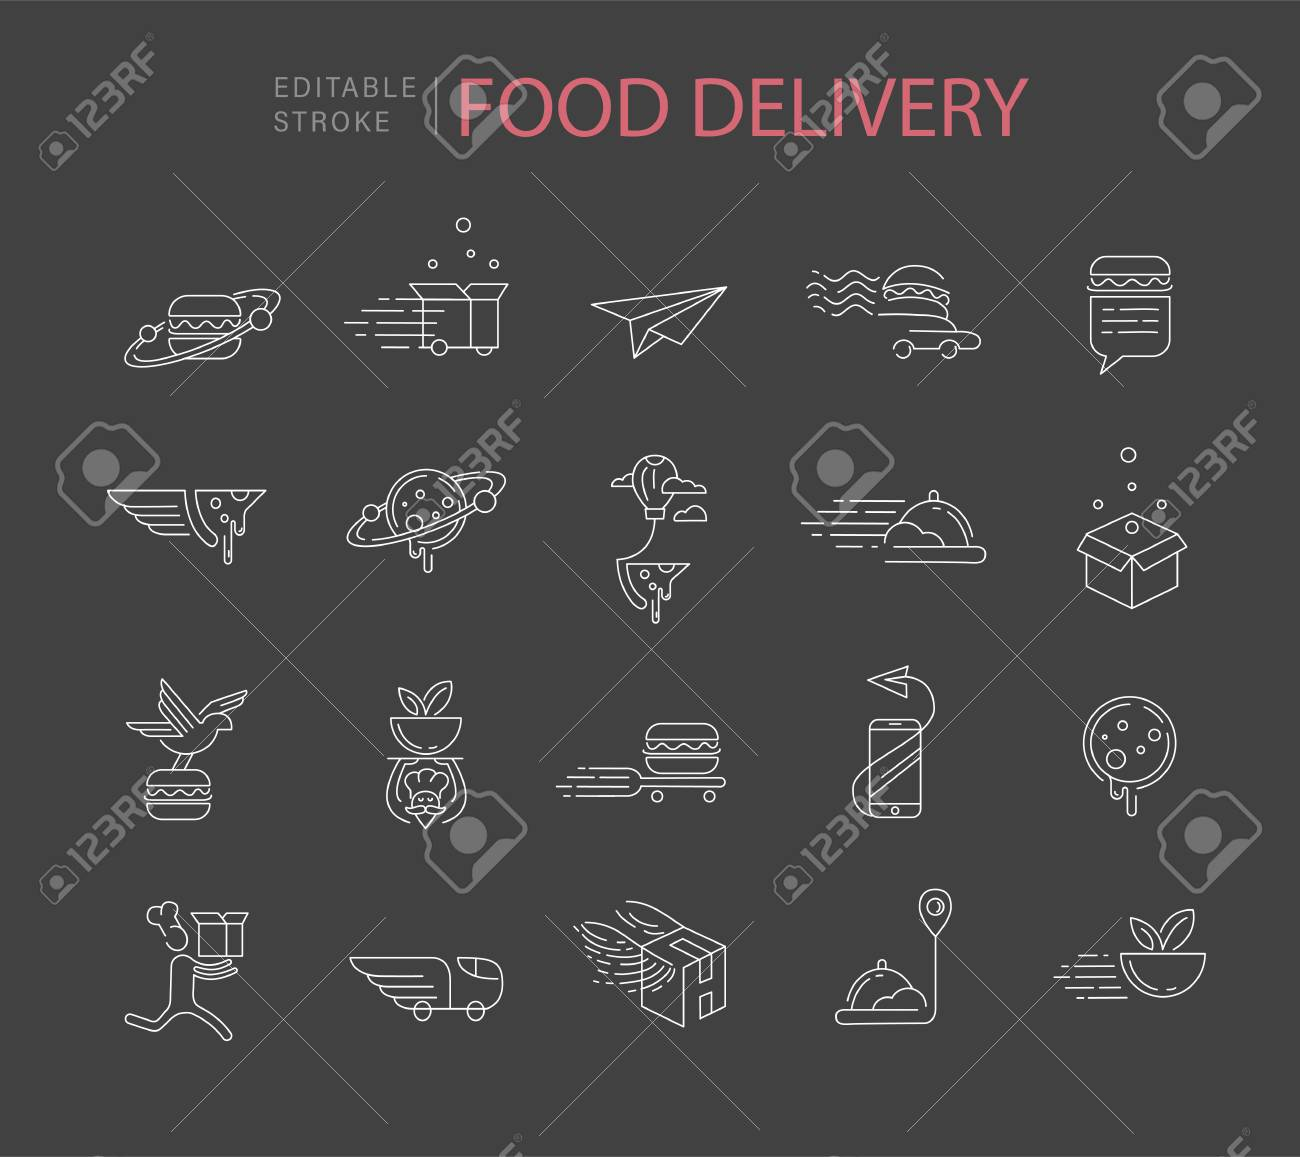 Vector icon and logo for food online deliwery. Editable outline stroke size. Line flat contour, thin and linear design. Simple icons. Concept illustration. Sign, symbol, element. - 114162731